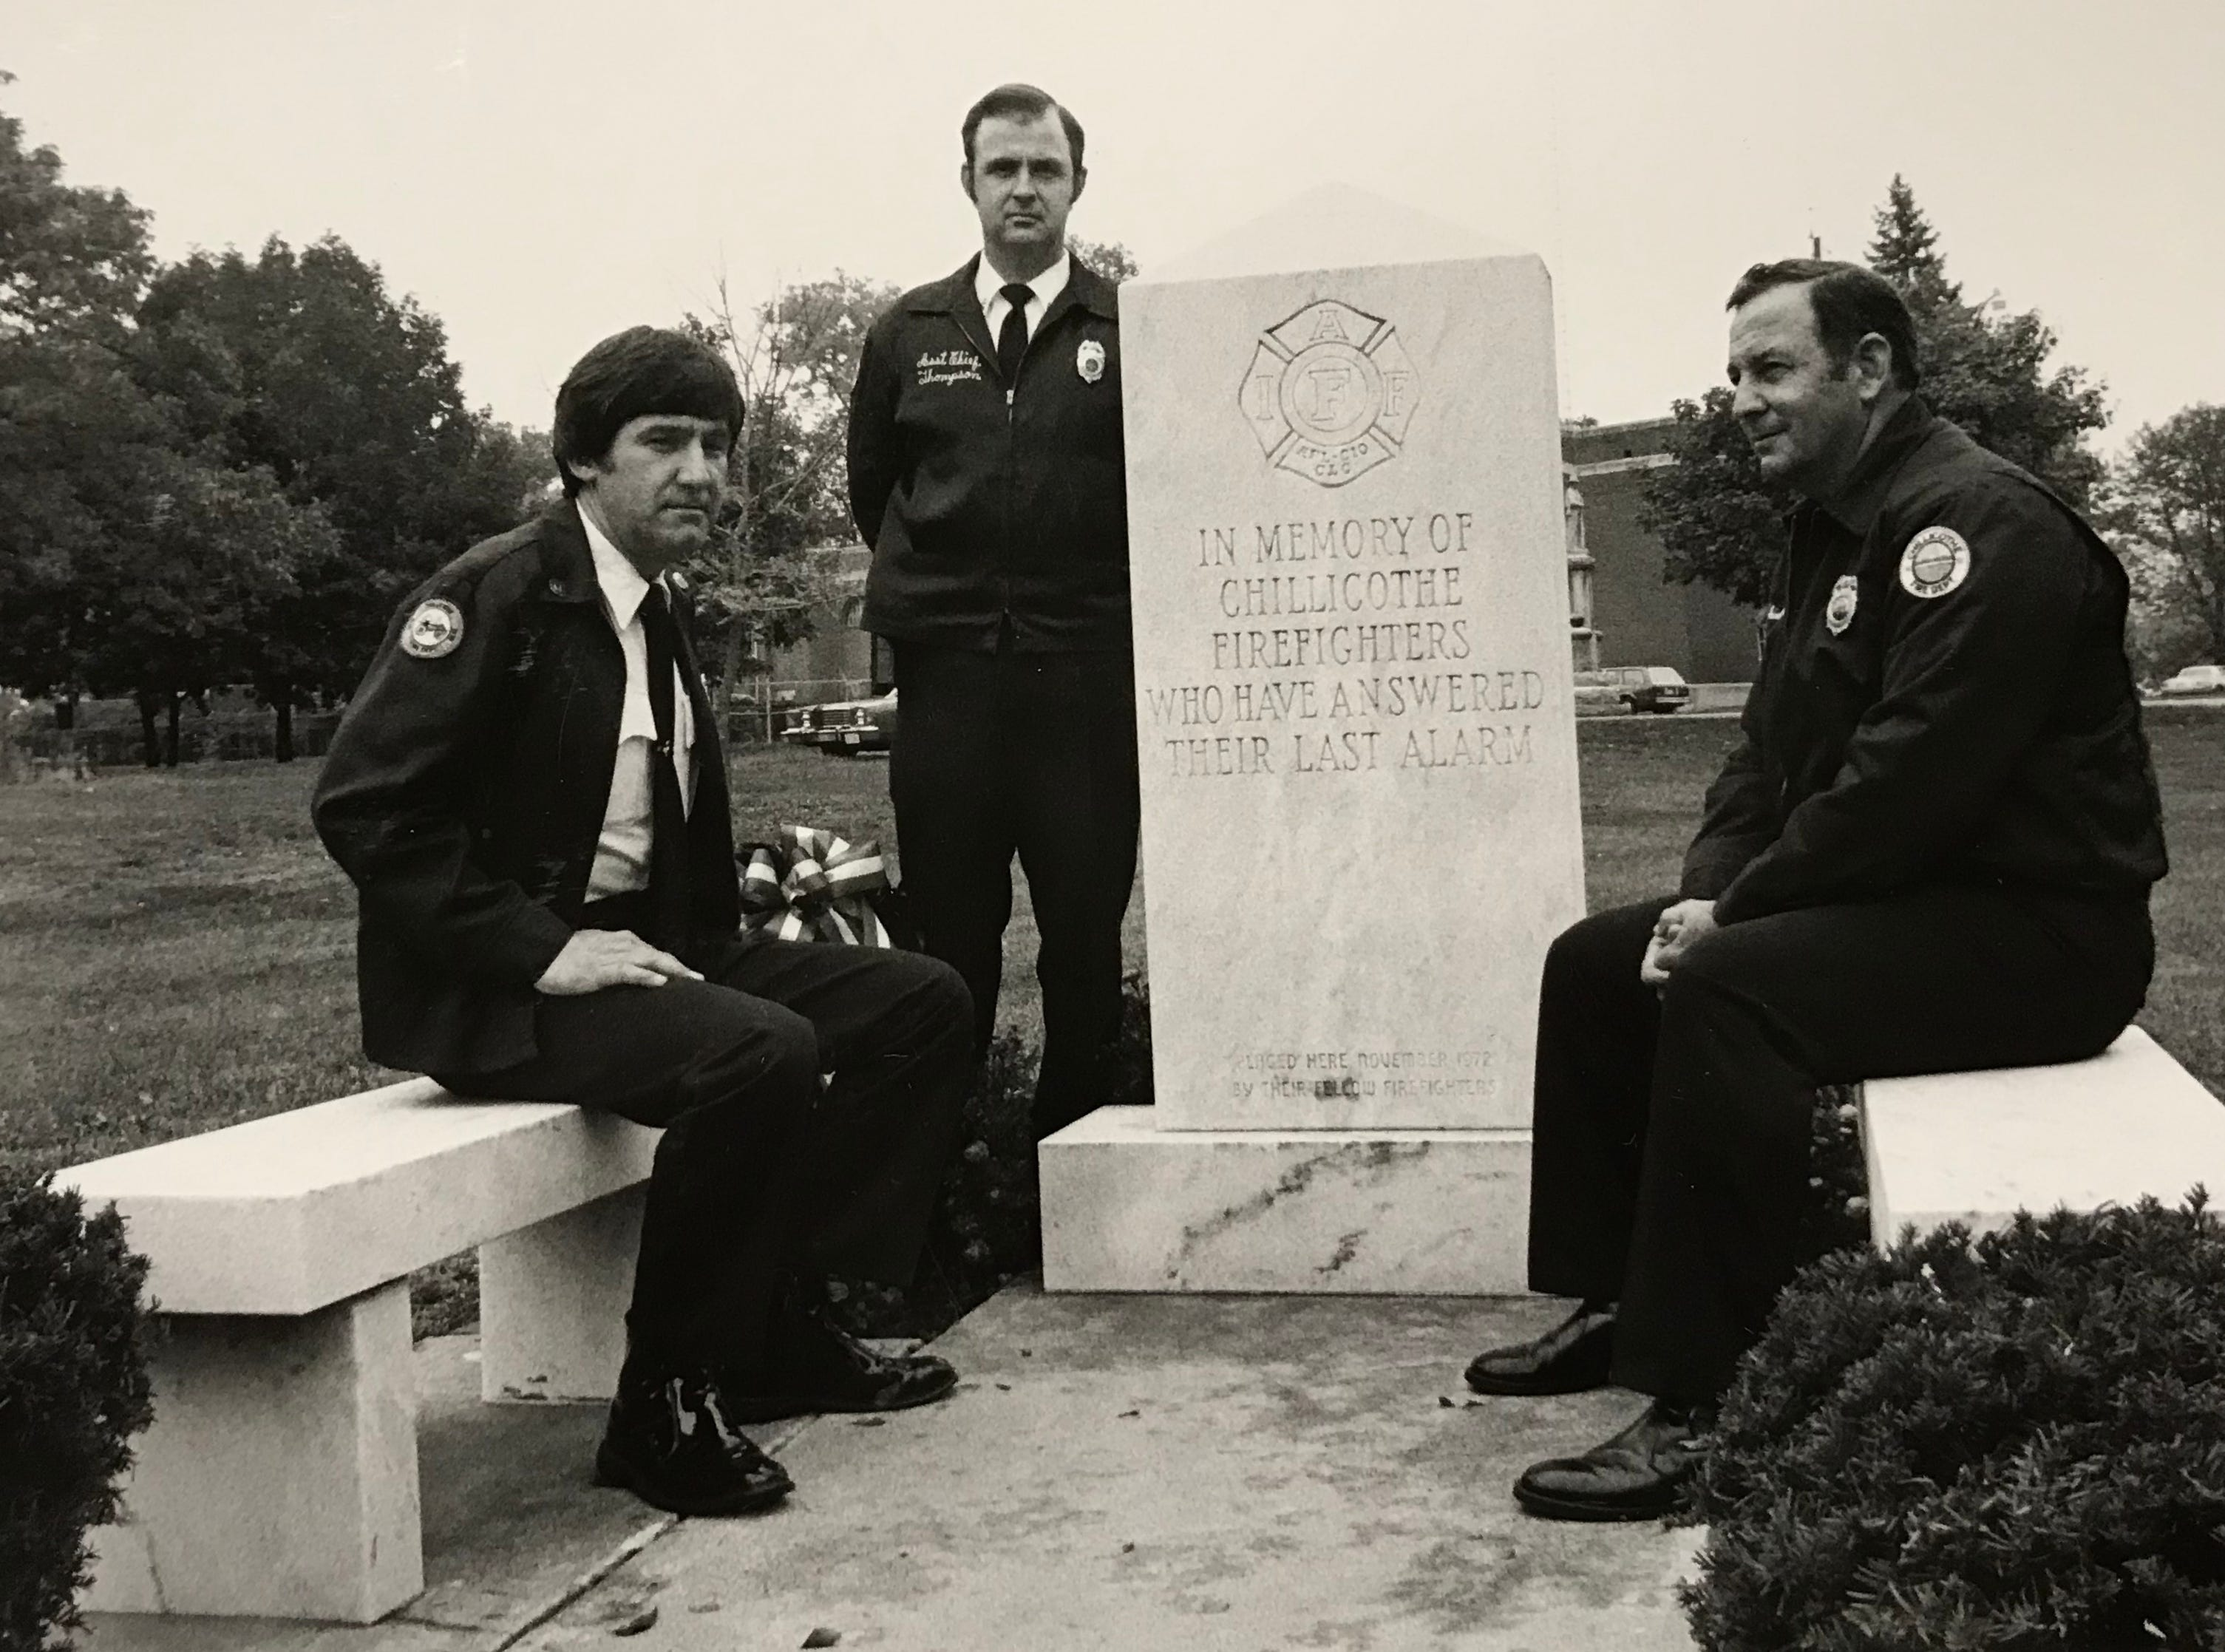 Chillicothe Fire Lt. Richard Copp, left, Lt. Larry Thomson, standing, and Chief David Carnes sit at the Chillicothe firefighters memorial in October 1984.